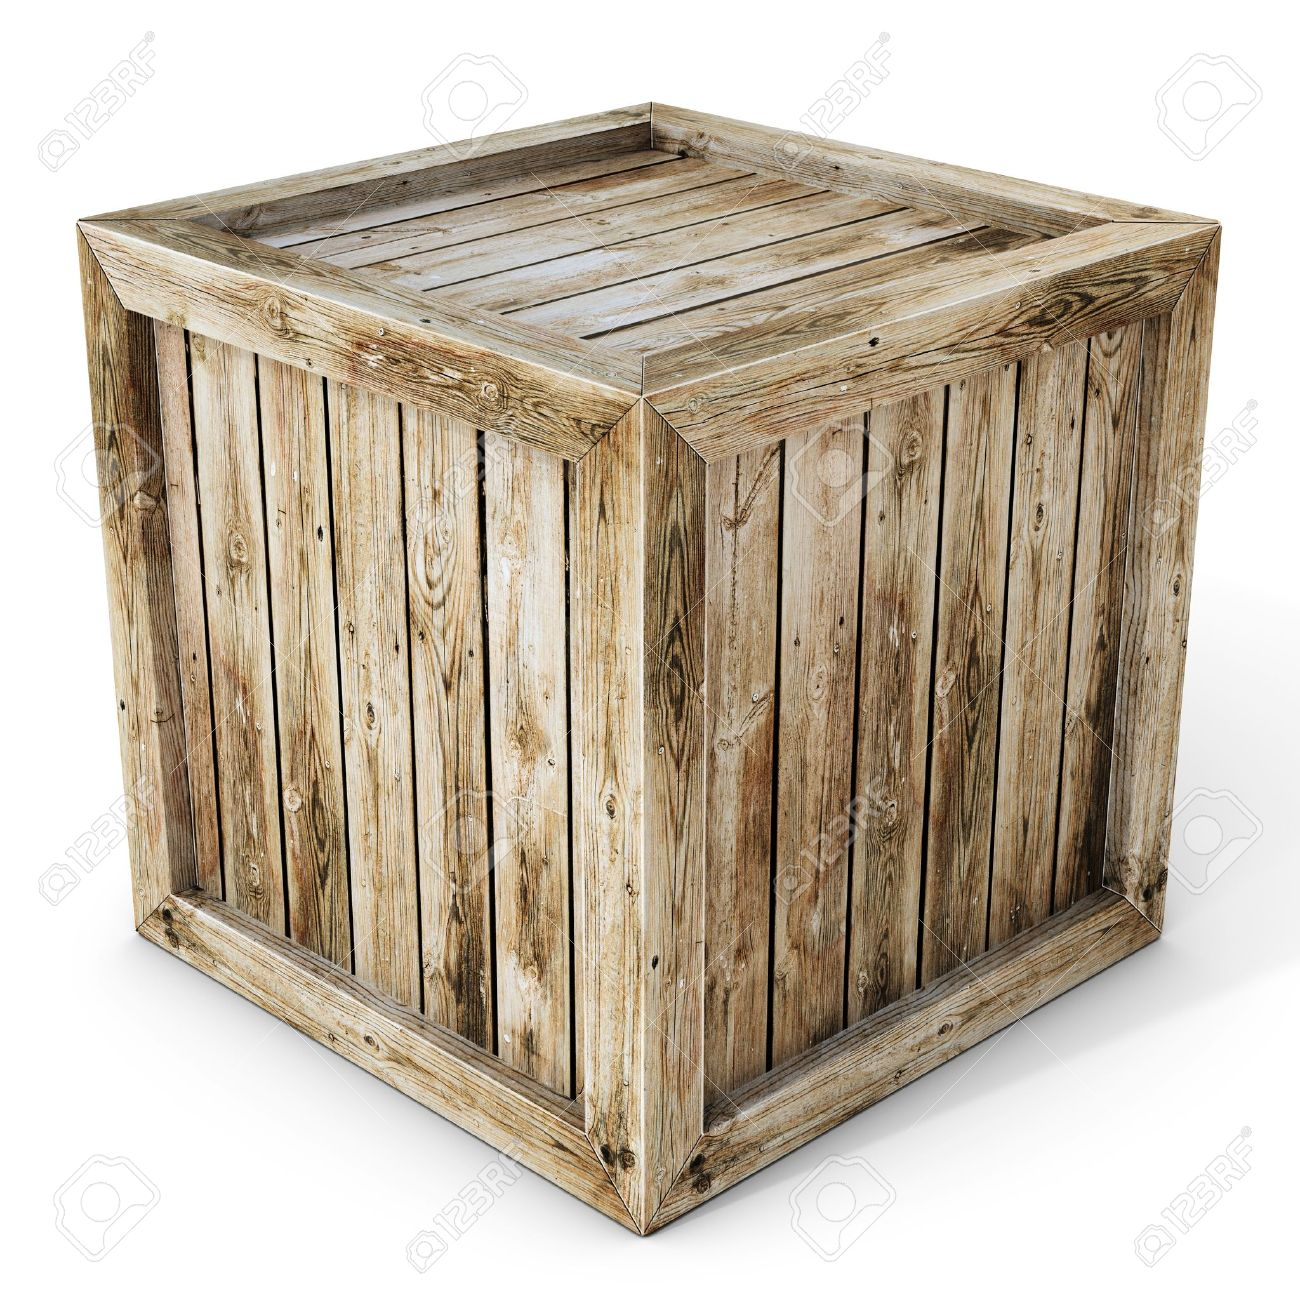 wooden box clipart. wood box 3d old wooden crate on white background clipart